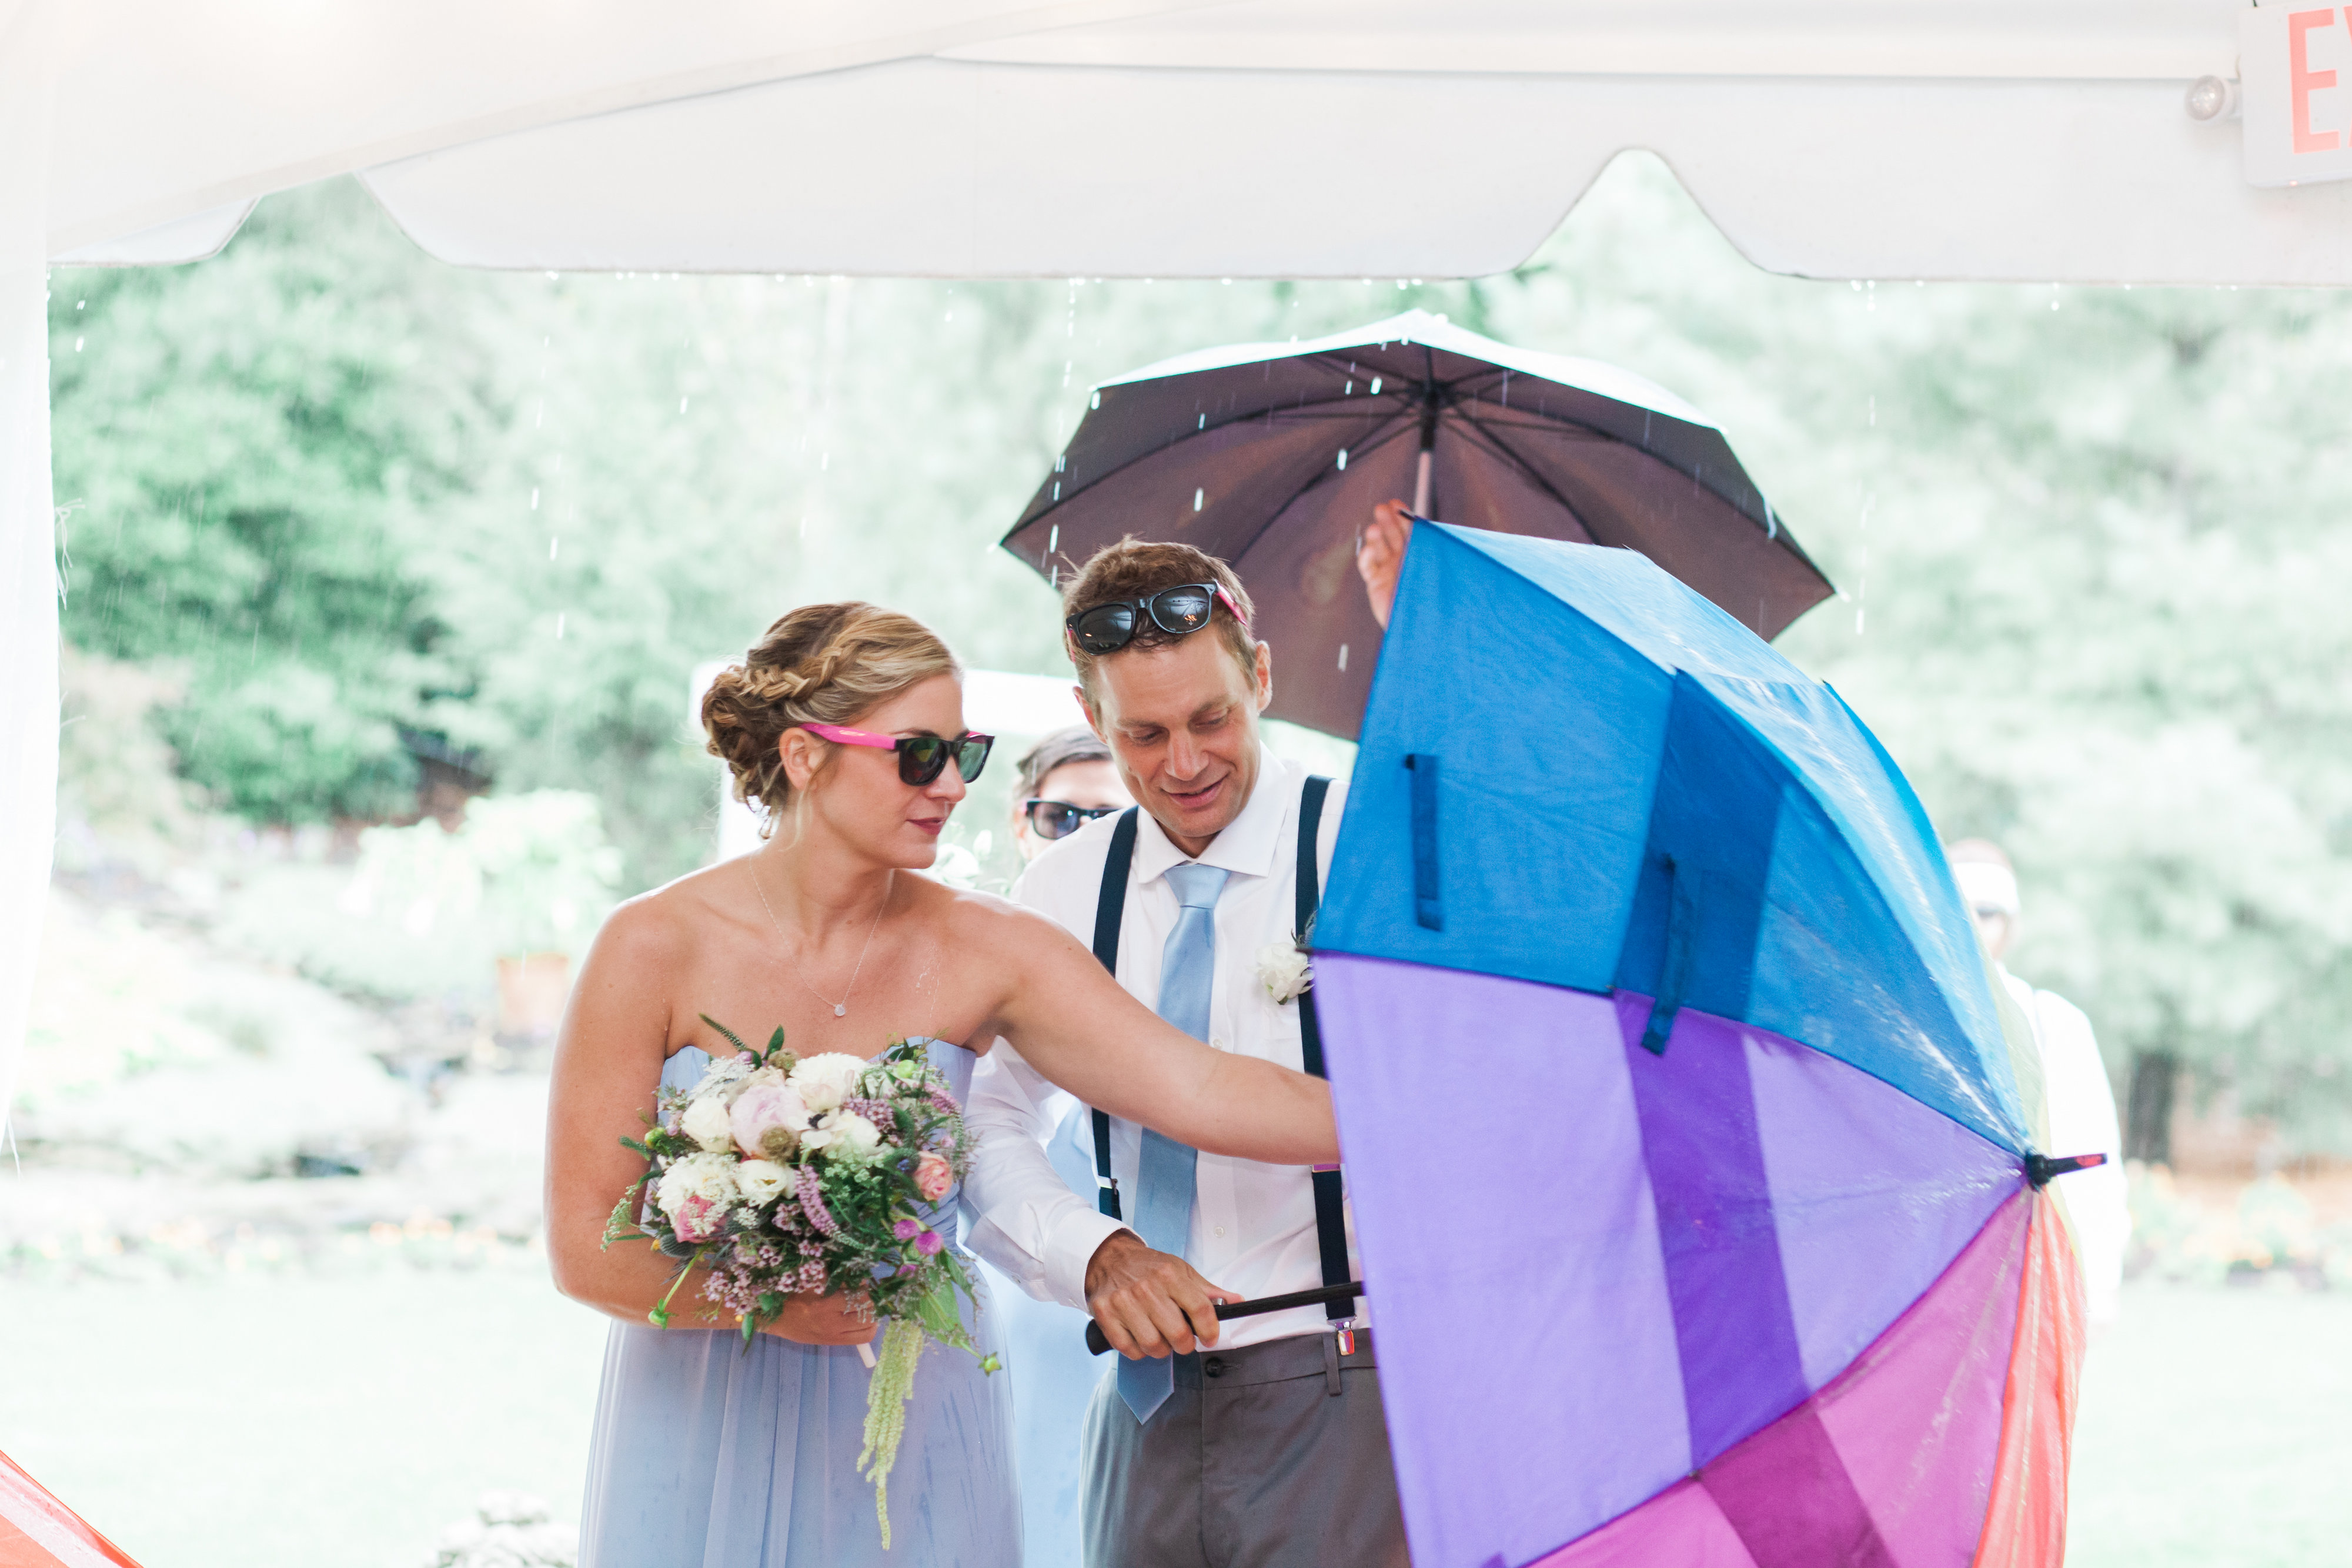 View More: http://lacandellaweddings.pass.us/erinpete